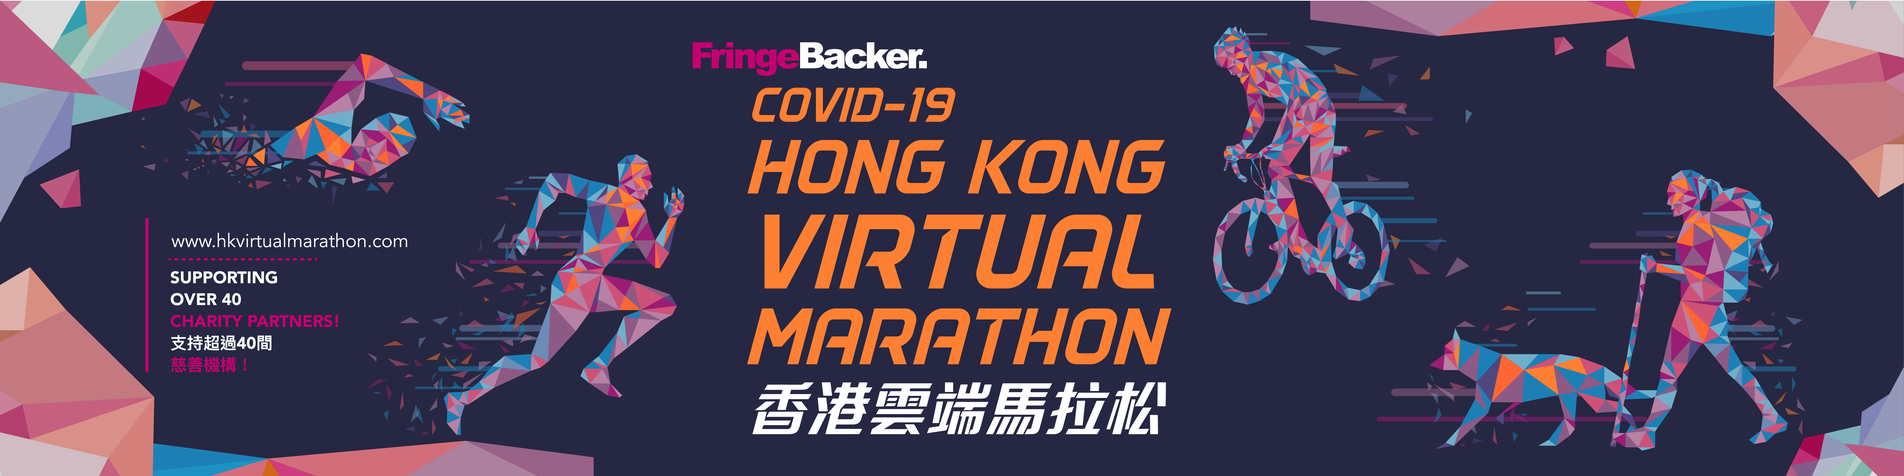 FringeBacker Fundraiser FringeBacker COVID-19 Hong Kong Virtual Marathon